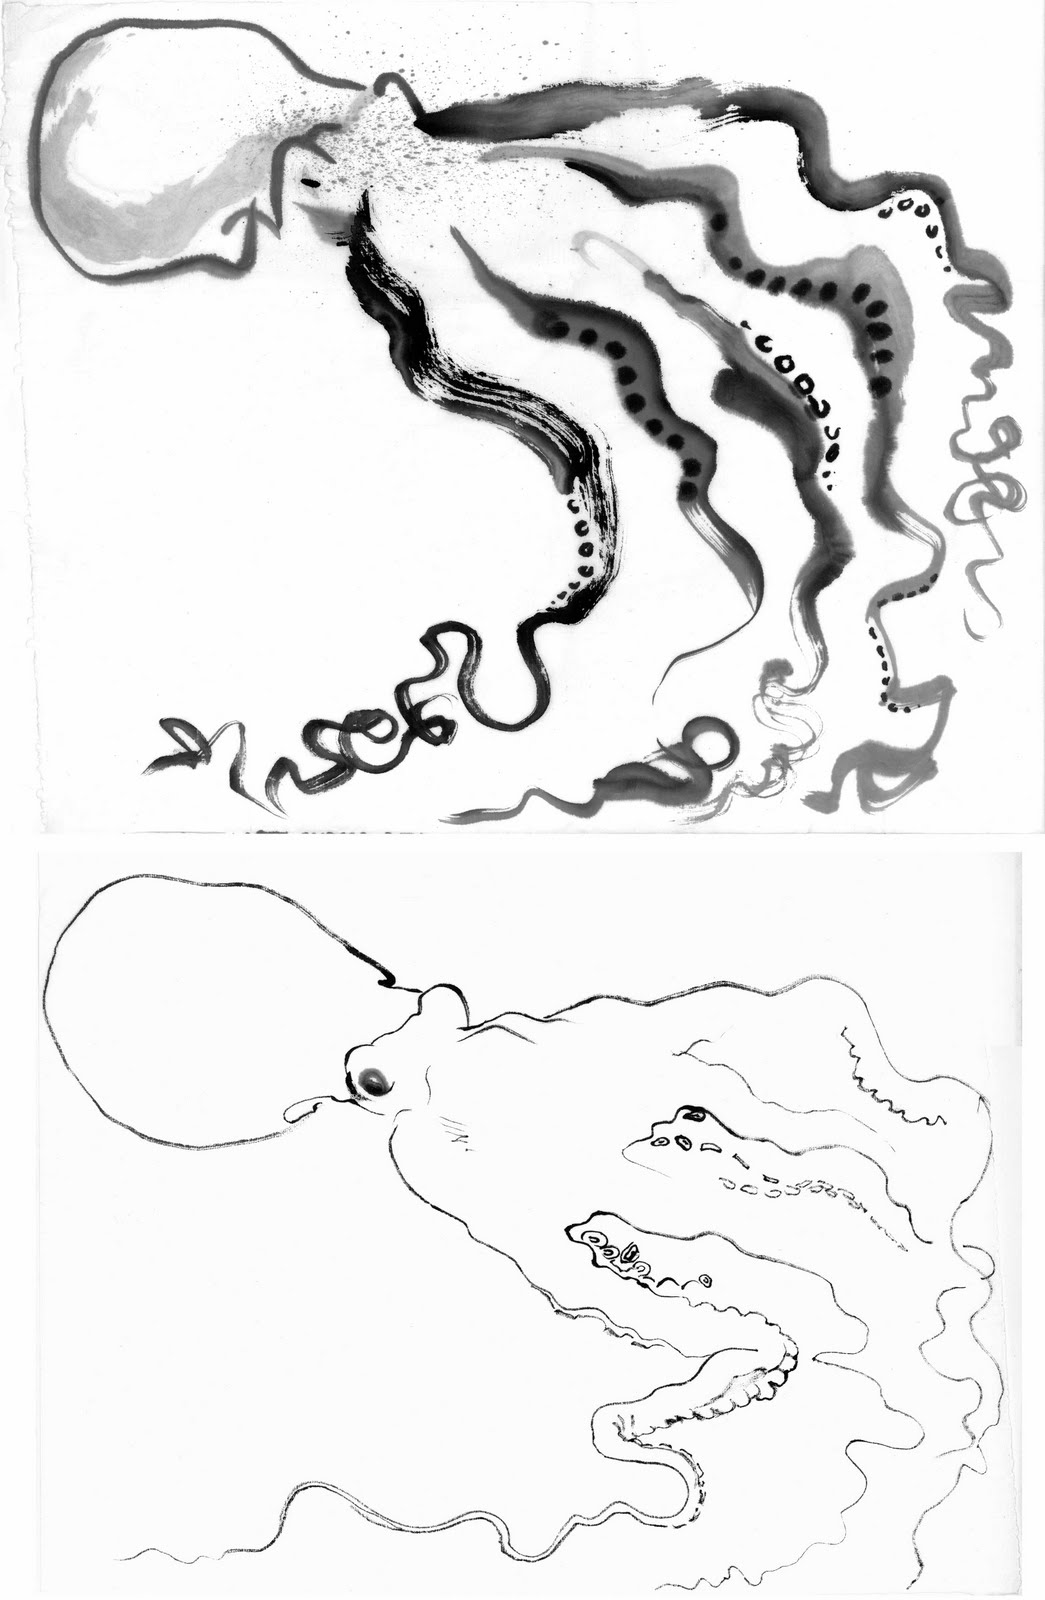 drawings of octopuses